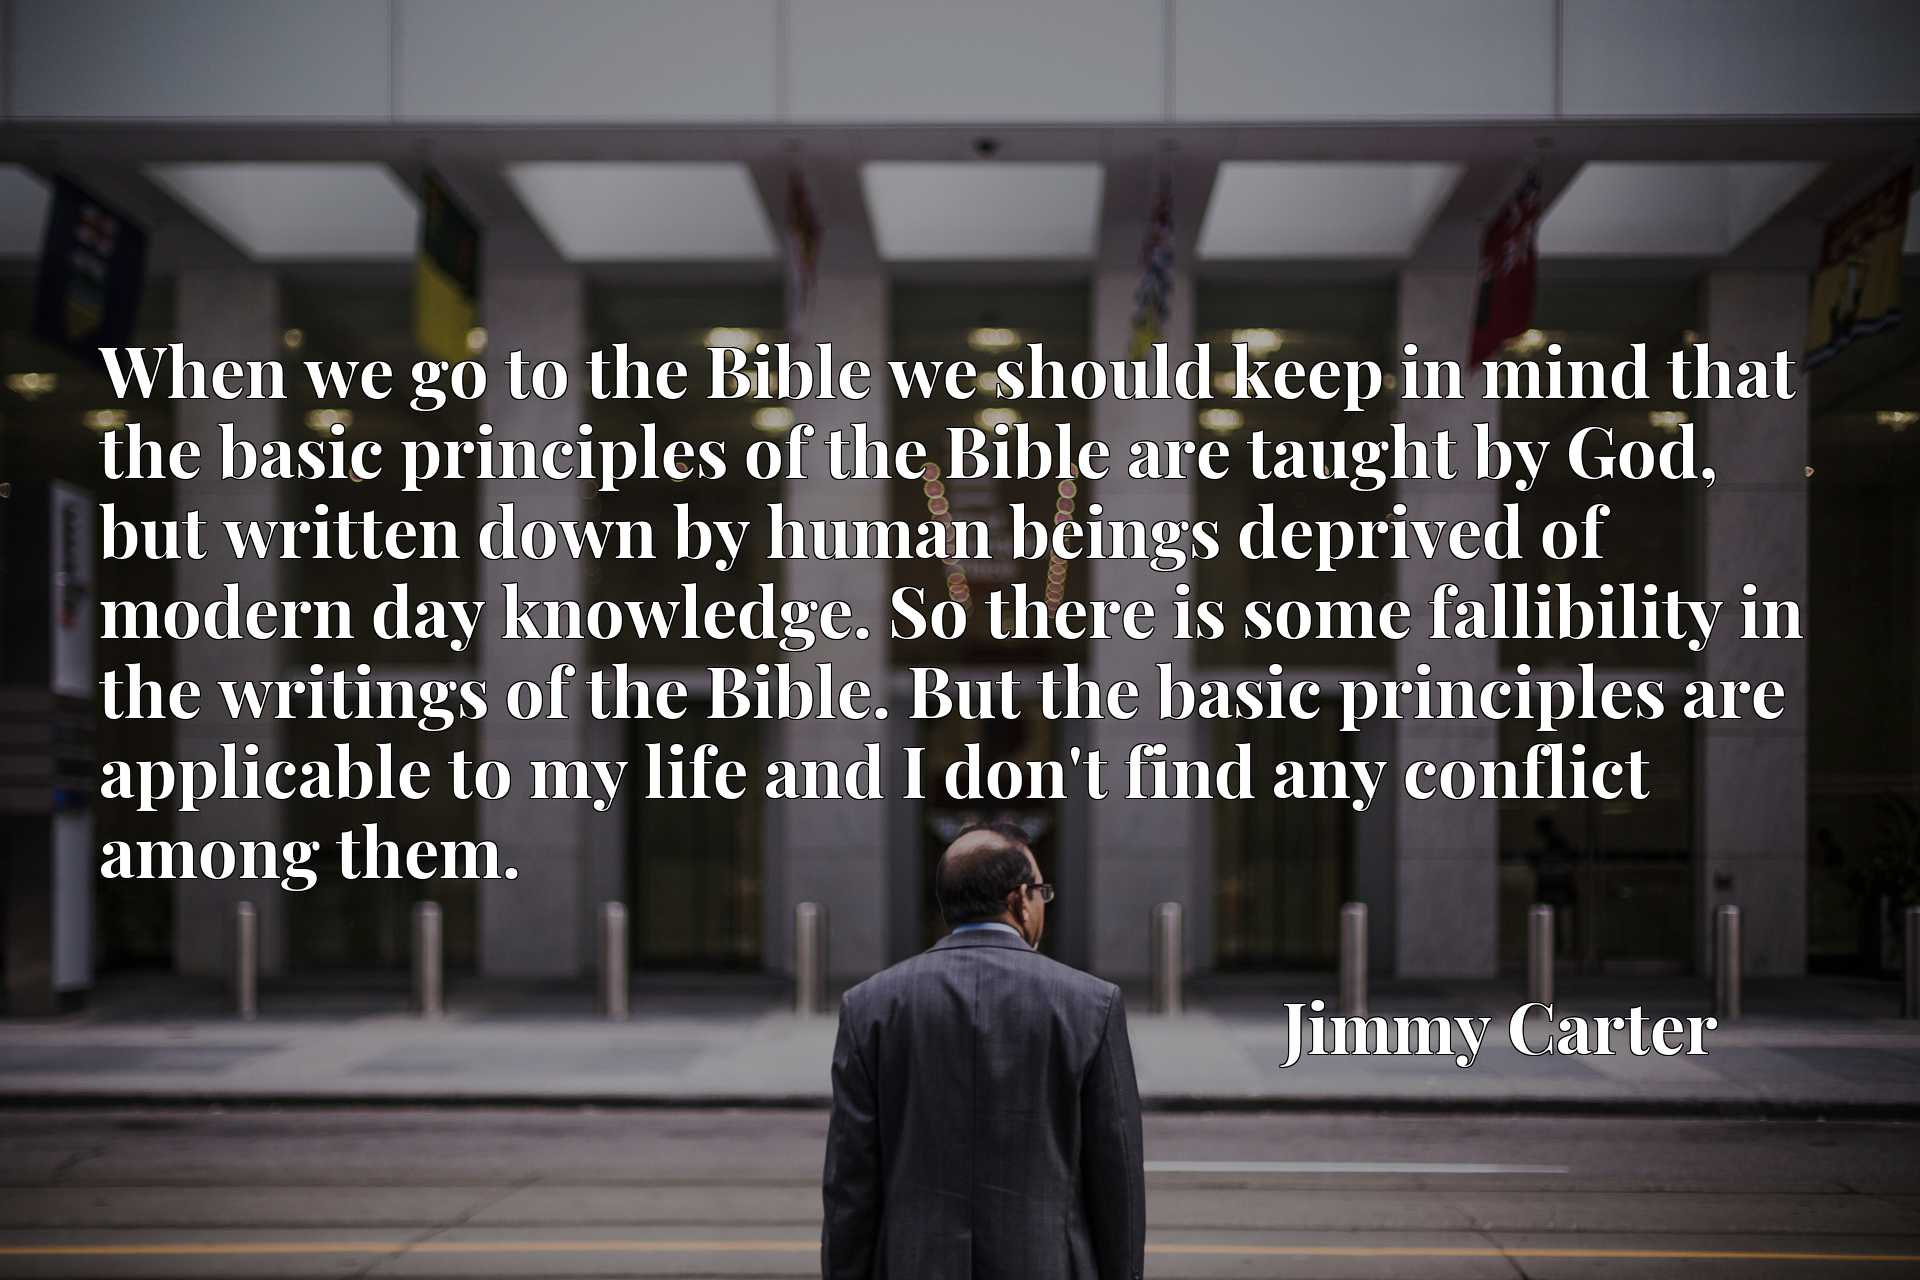 When we go to the Bible we should keep in mind that the basic principles of the Bible are taught by God, but written down by human beings deprived of modern day knowledge. So there is some fallibility in the writings of the Bible. But the basic principles are applicable to my life and I don't find any conflict among them.